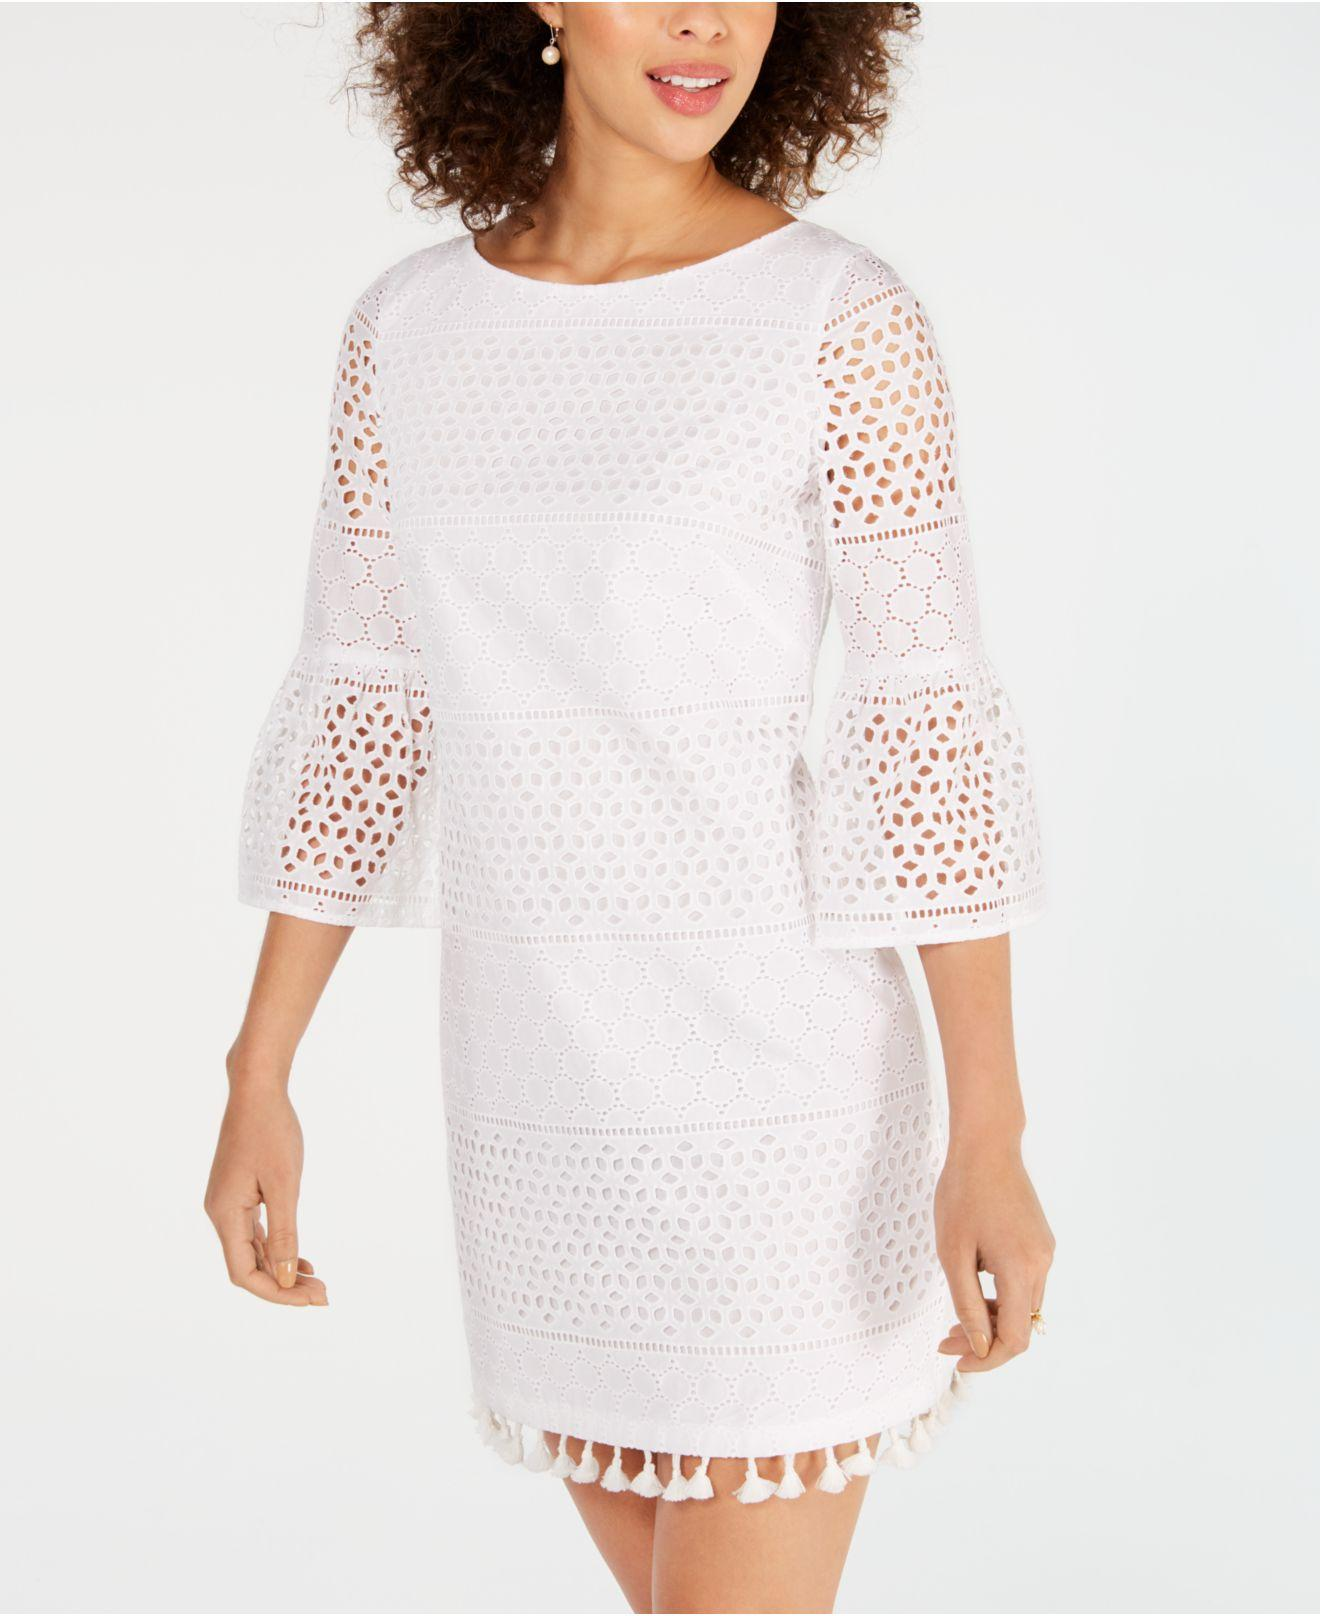 d4300c87e03 Vince Camuto - White Cotton Long-sleeve Eyelet Shift Dress - Lyst. View  fullscreen